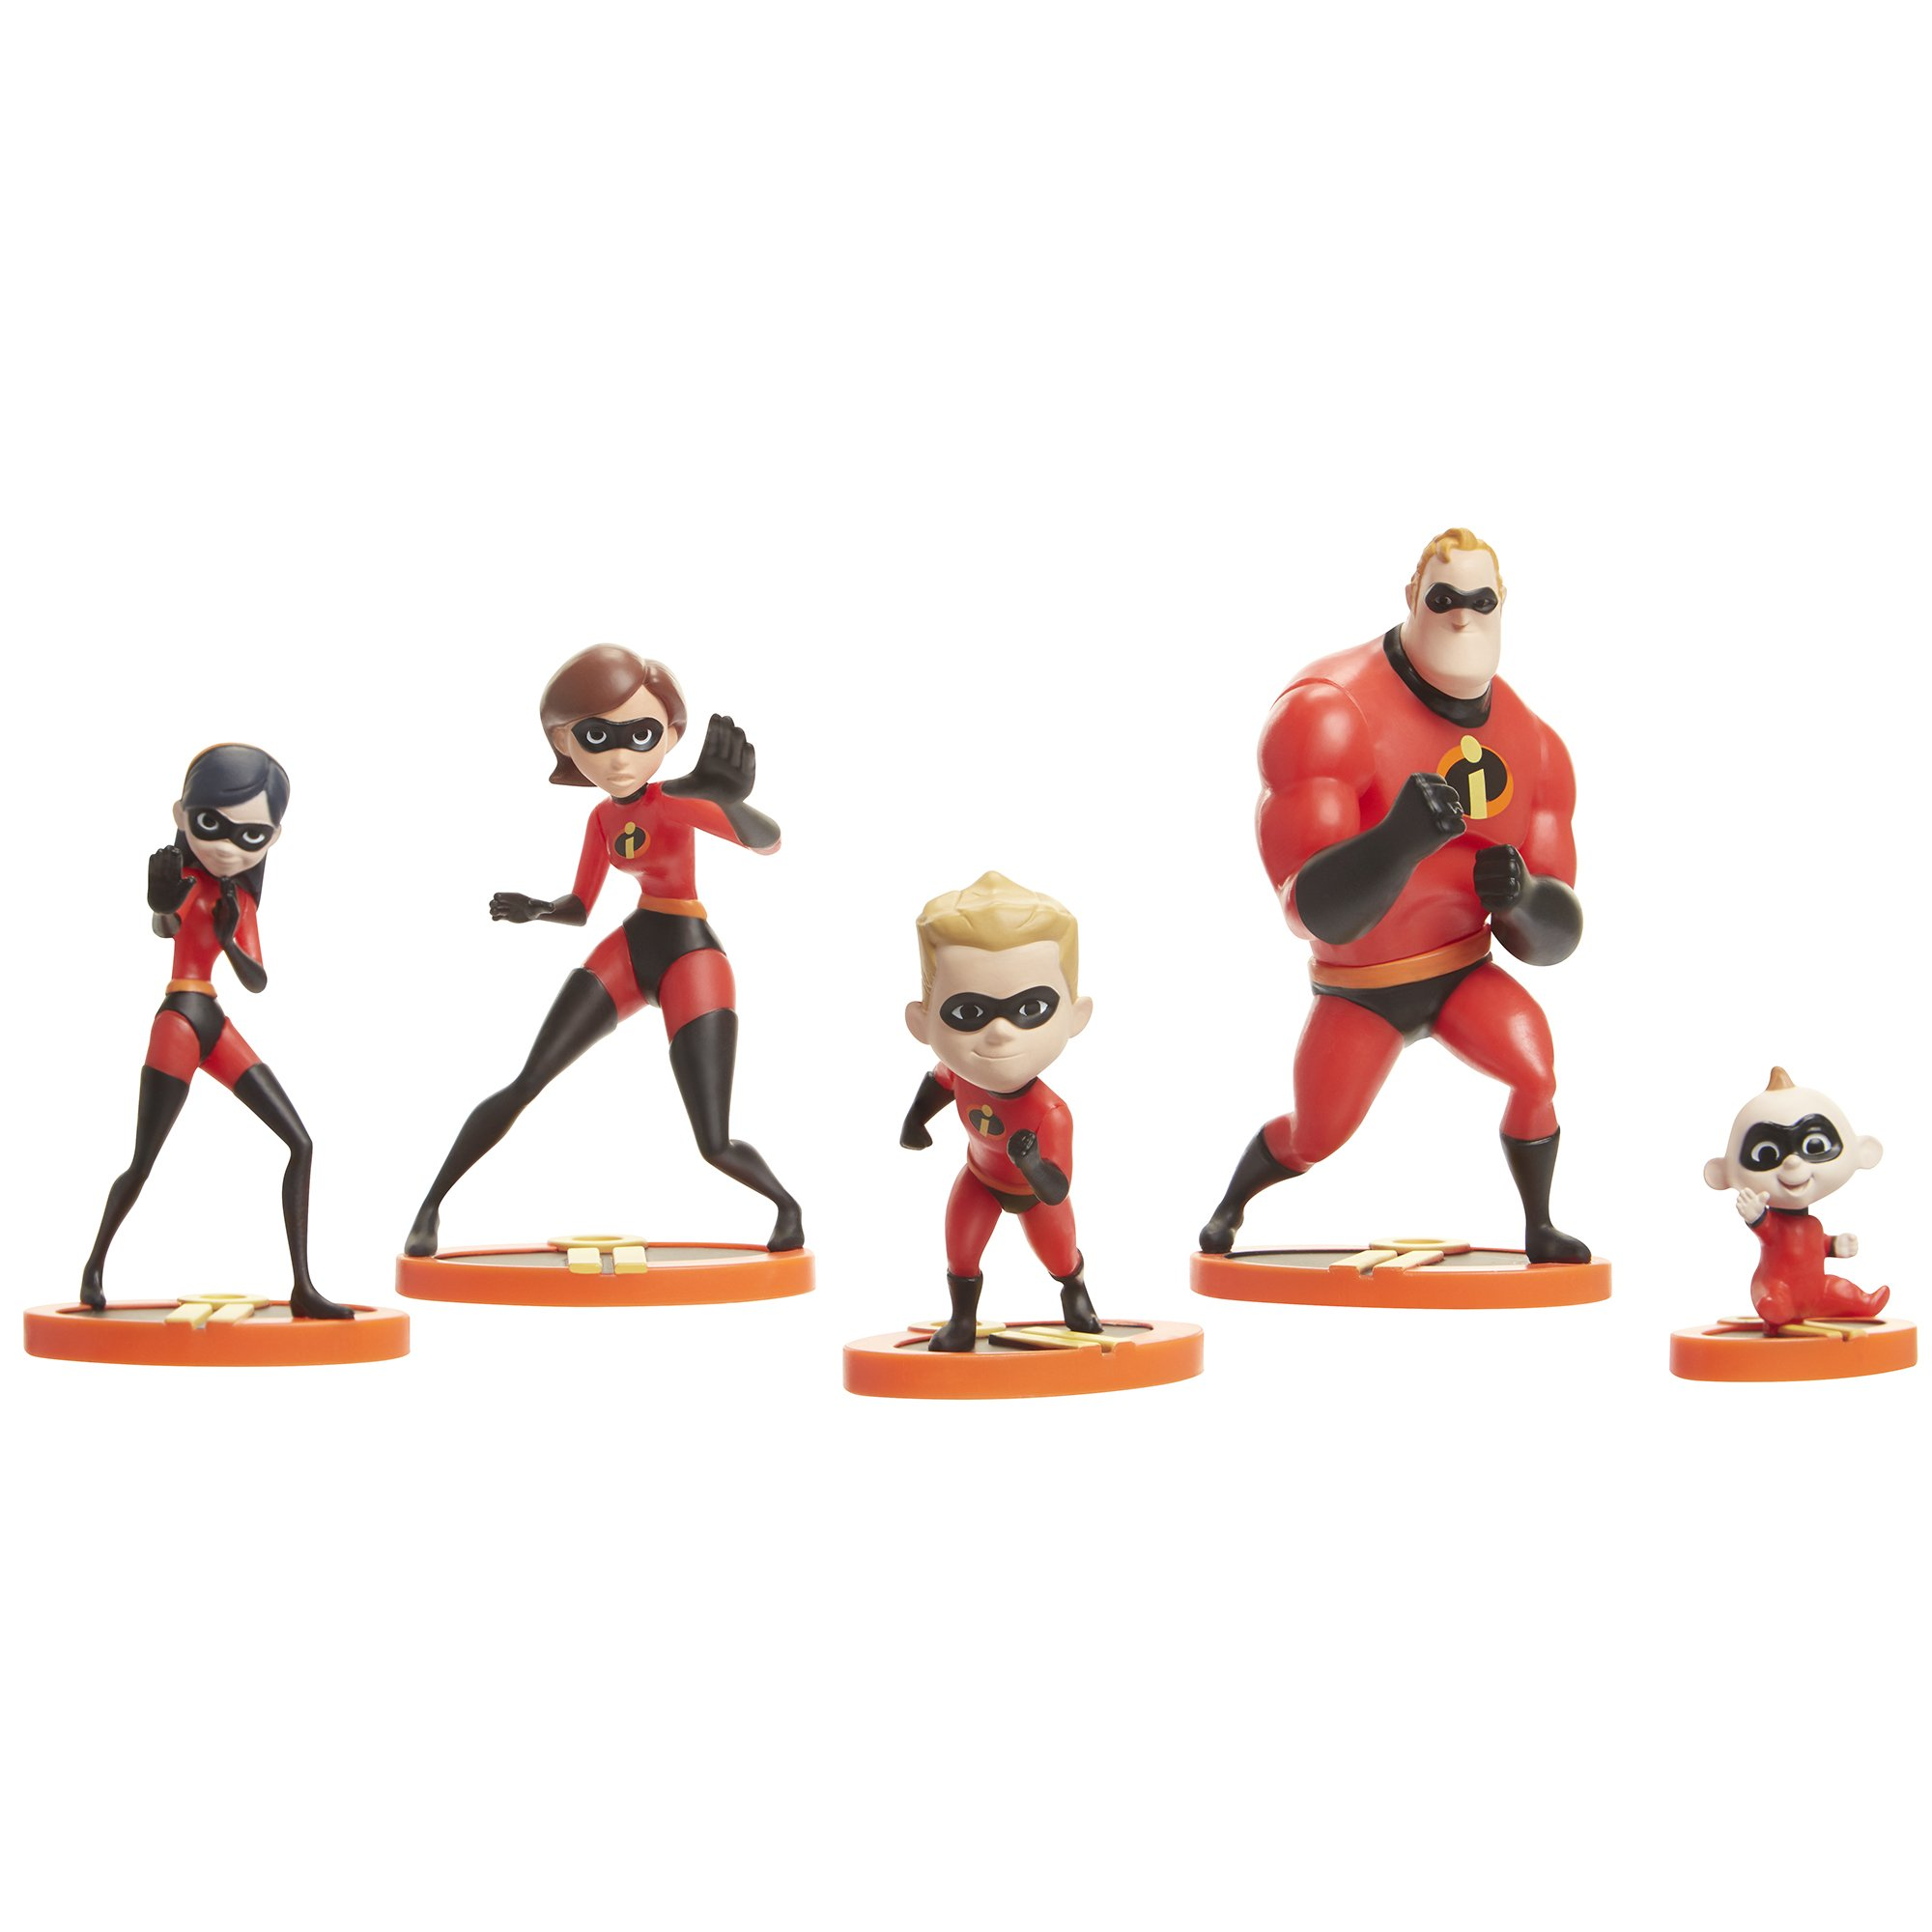 The Incredibles 2, 5 Piece Family Figure Set Comes with (Mr./Mrs. Incredible, Violet, Dash, Jack Jack) by The Incredibles 2 (Image #2)